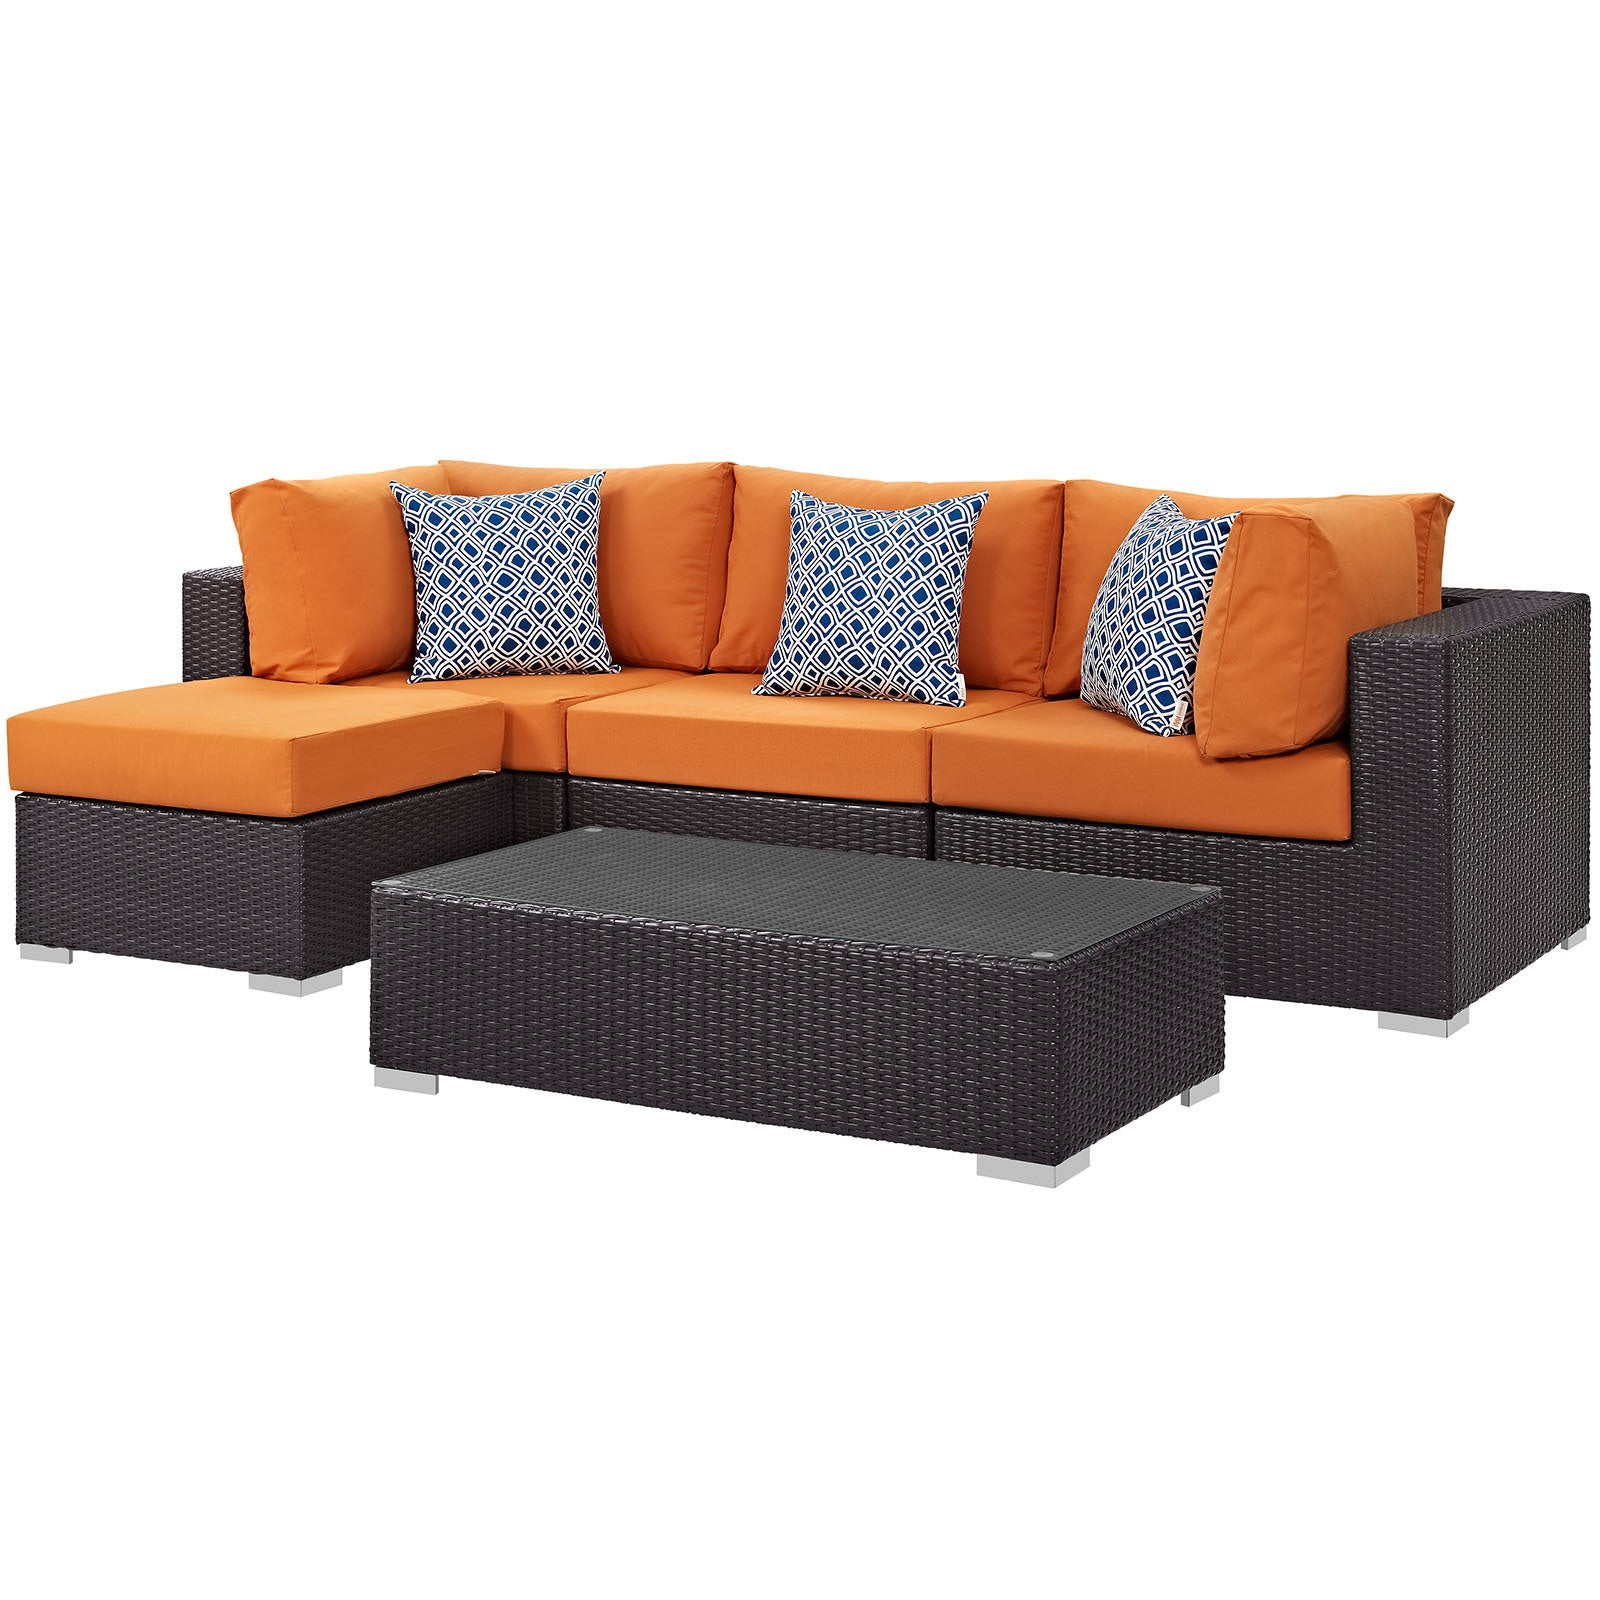 orange modway patio furniture find great outdoor seating dining rh overstock com modway patio furniture covers modway patio furniture sets